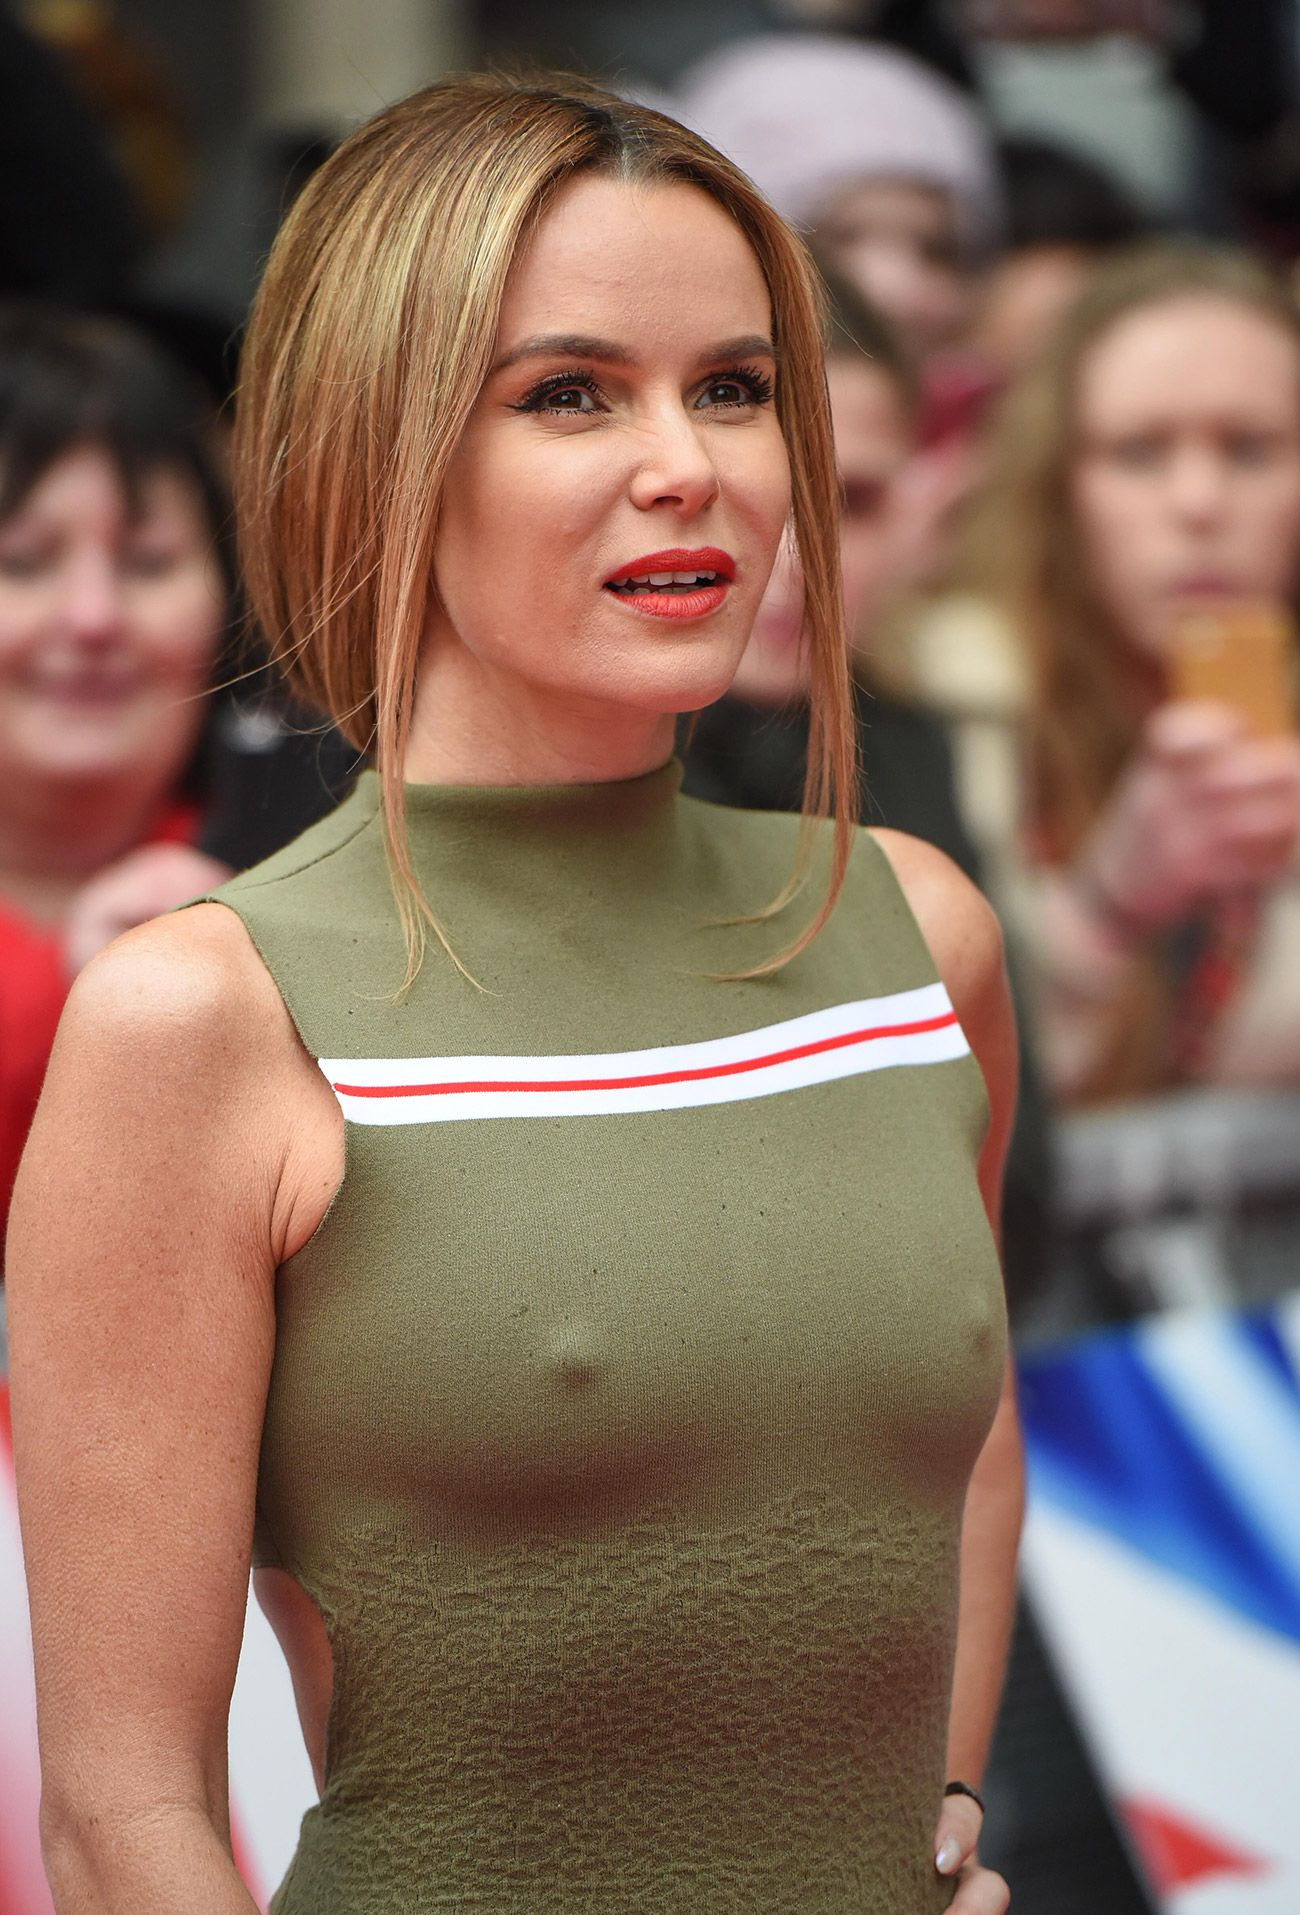 Celebrity Amanda Holden nudes (75 foto and video), Topless, Is a cute, Selfie, bra 2019